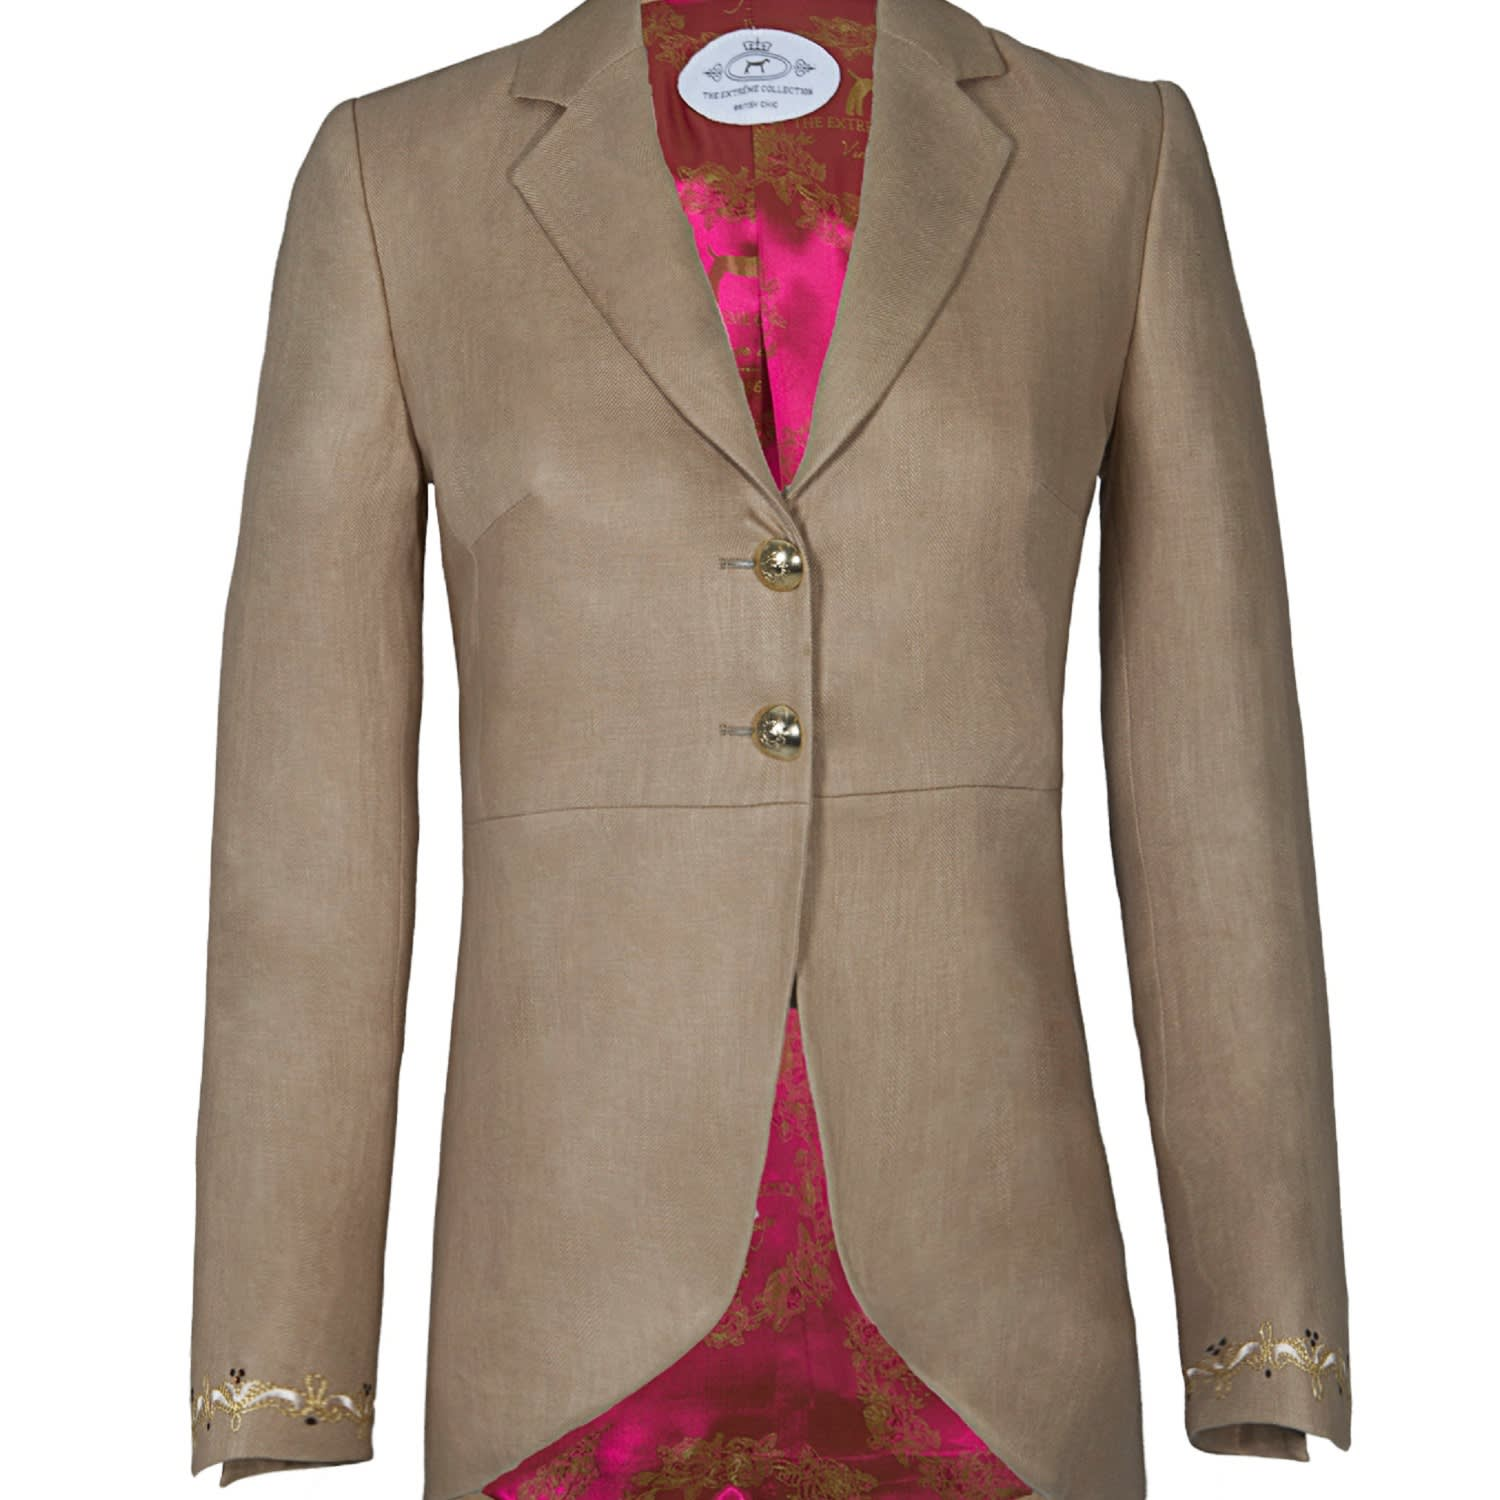 c70b9d680b049 Frac Beige Blazer With Details | The Extreme Collection | Wolf & Badger